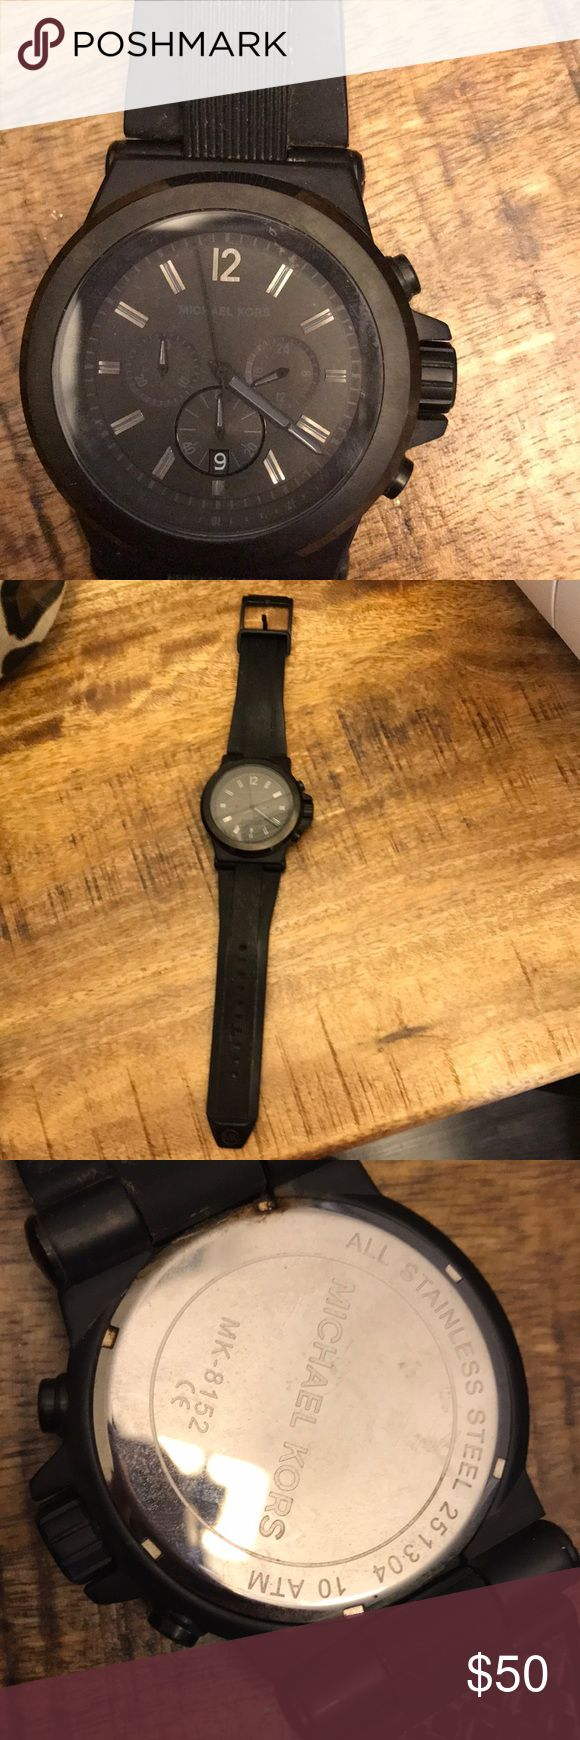 Michae Kors Men's Dylan Watch Michae Kors Men's Dylan Watch  Pre-Used Men's Watch  Black silicone strap  It NEEDS to be cleaned- hence low price  Needs new battery Michael Kors Accessories Watches